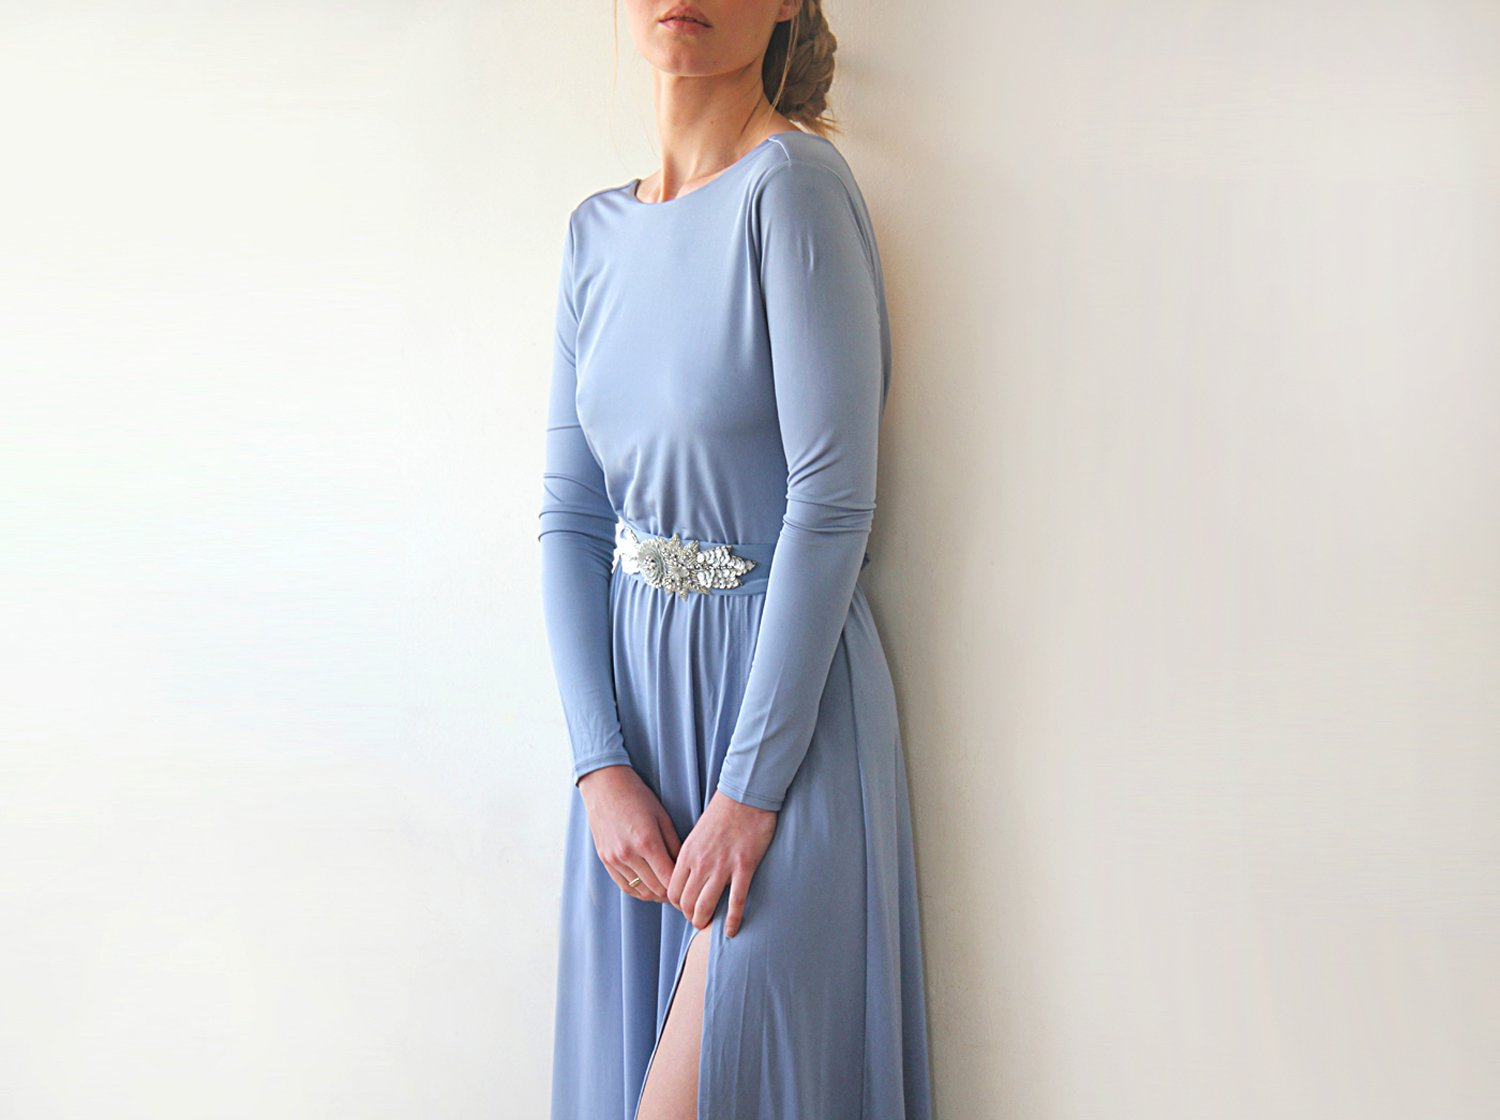 Dusty Blue Open Back Maxi Dress, Backless Bridesmaids Dress With A Slit, Long Sleeves Dusty Blue Dress 1100 - Blushfashion